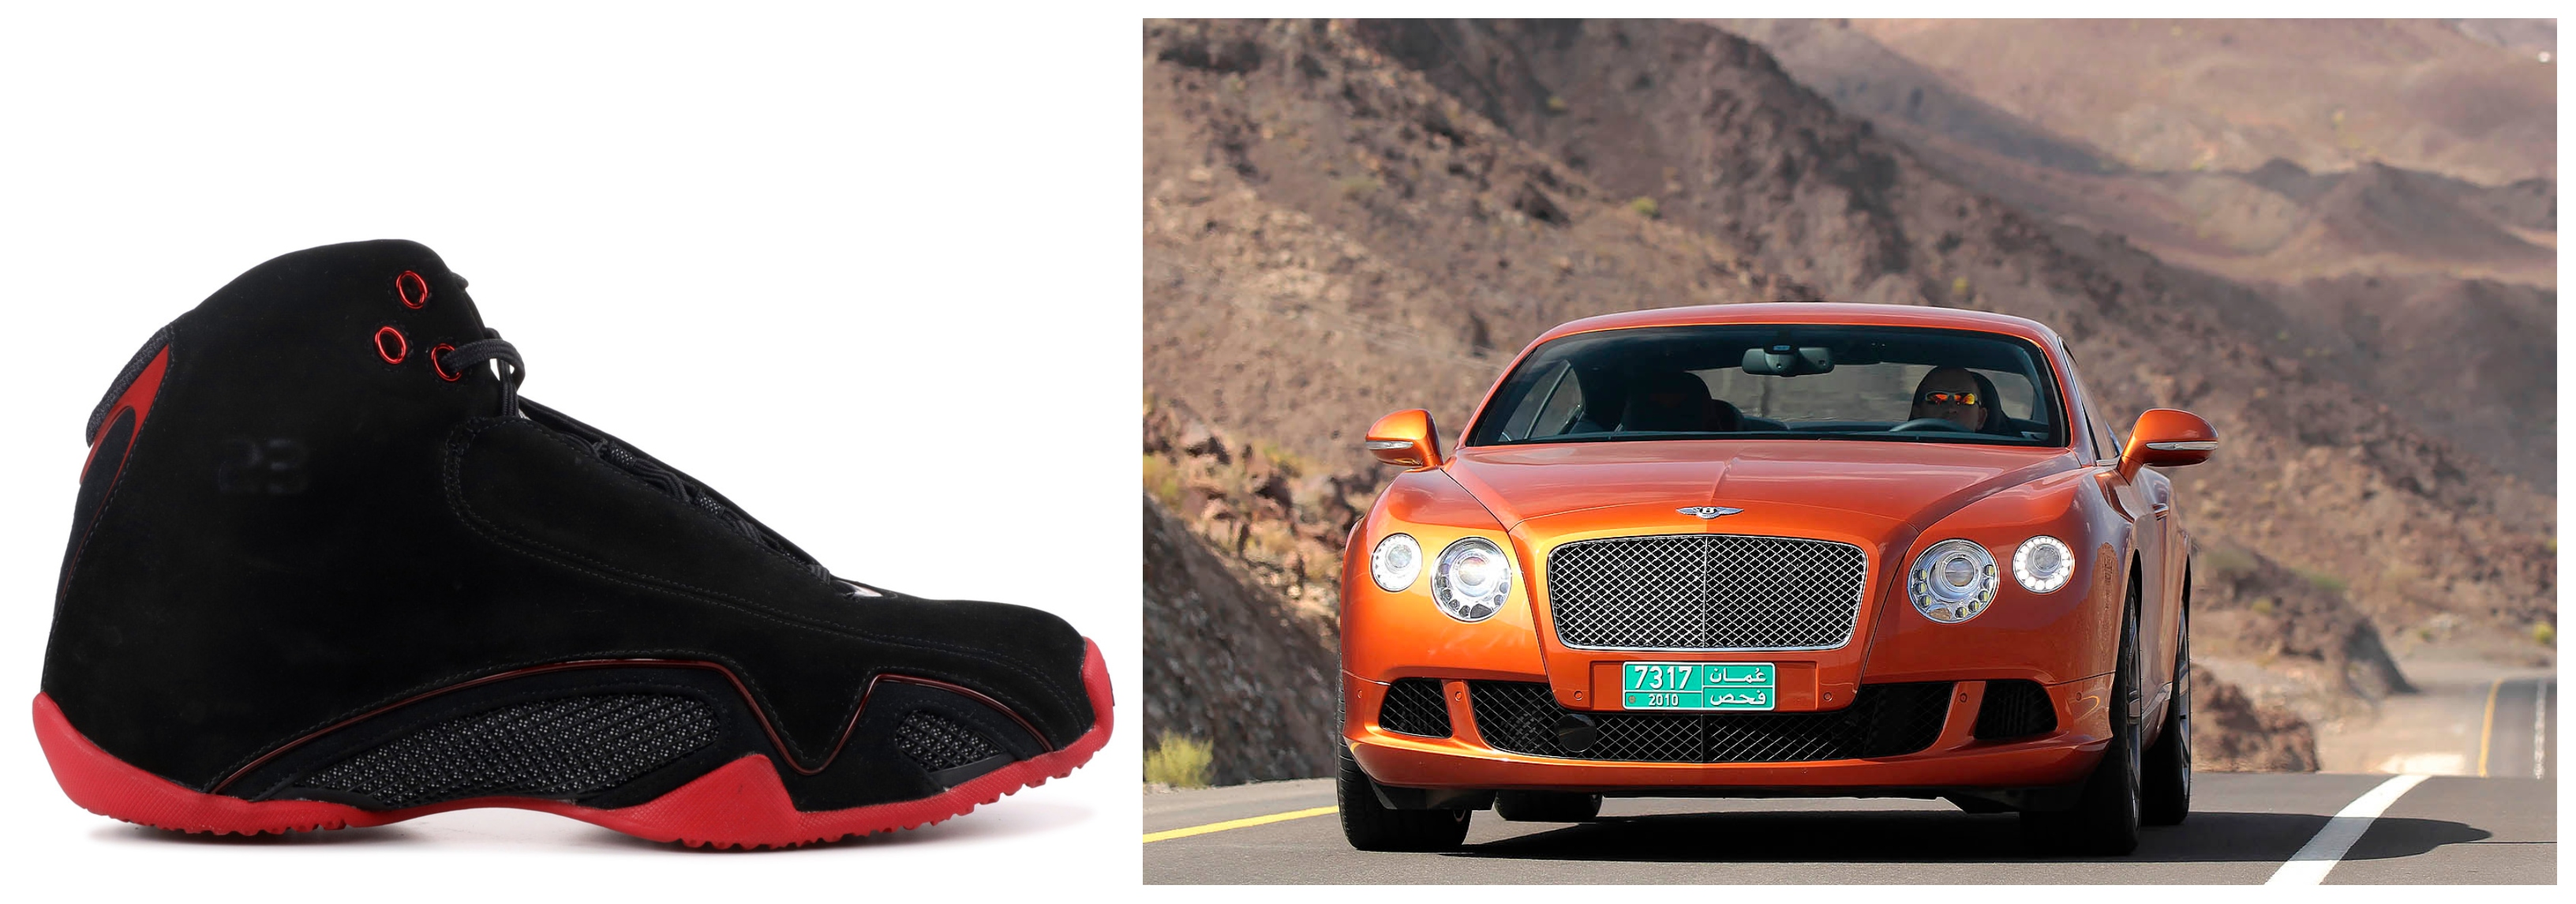 Air Jordan 21 - Bentley Continental GT Coupe